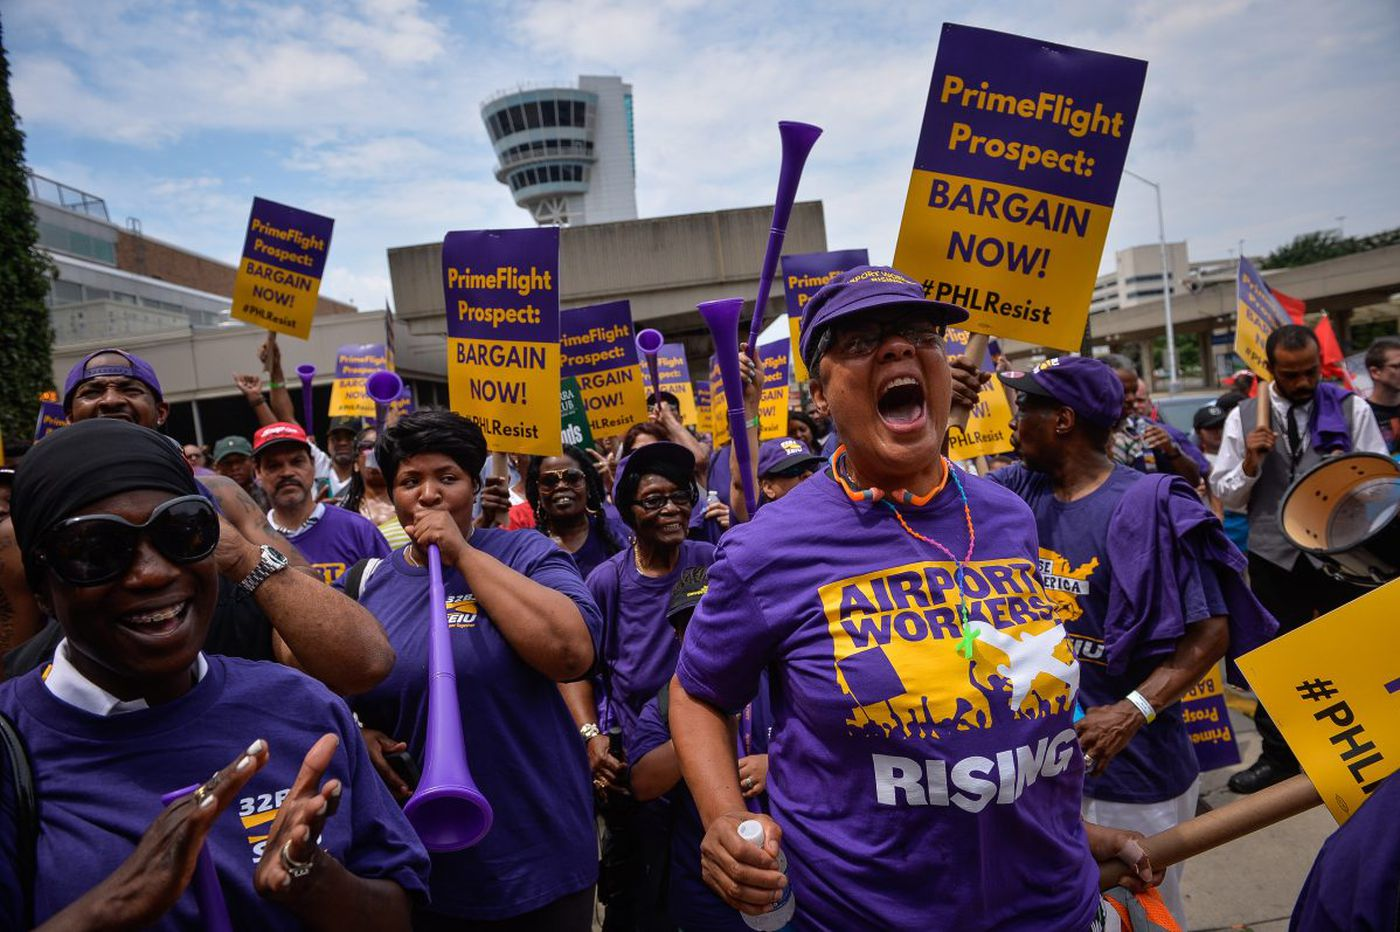 On Labor Day, unions worry about workers' future under Trump